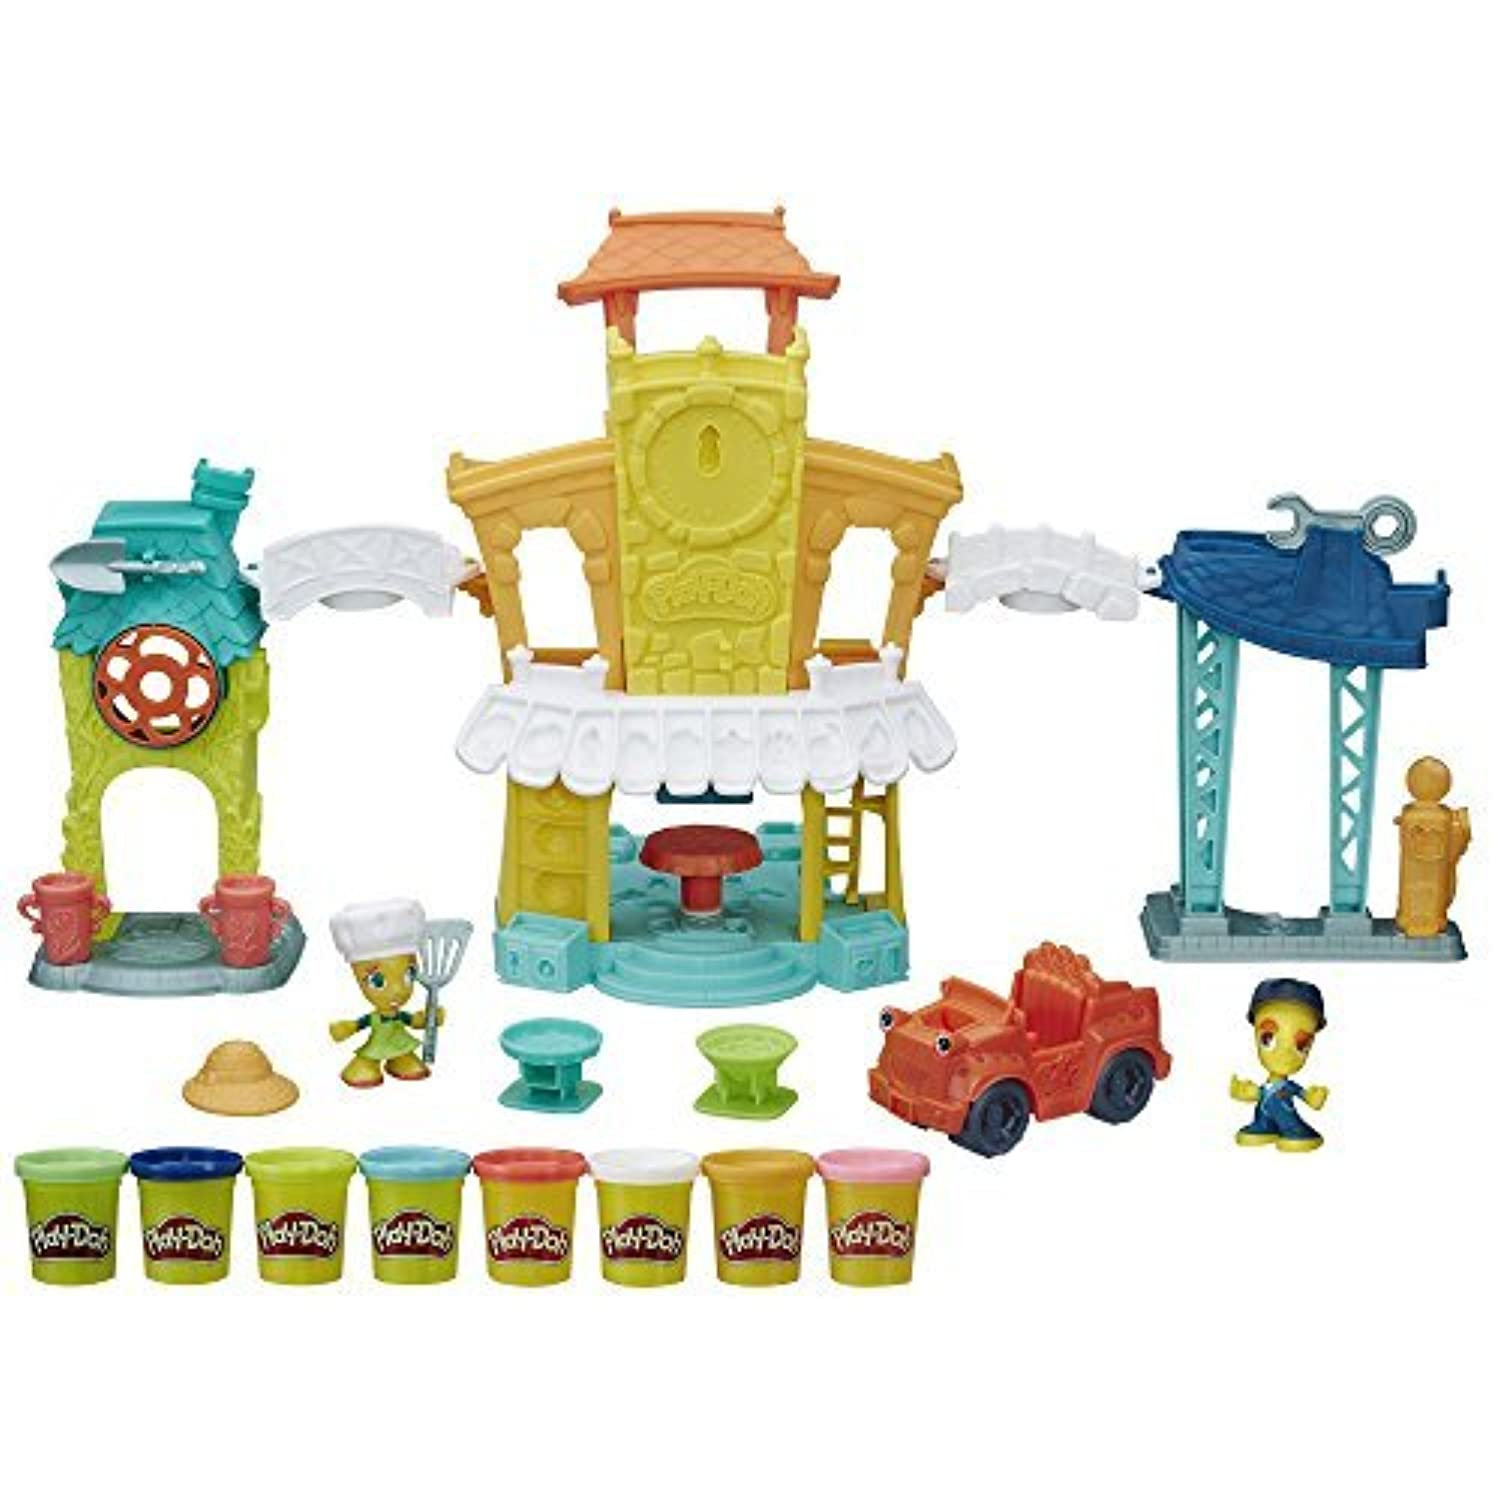 Play-Doh Town 3-in-1 Town Center [並行輸入品]